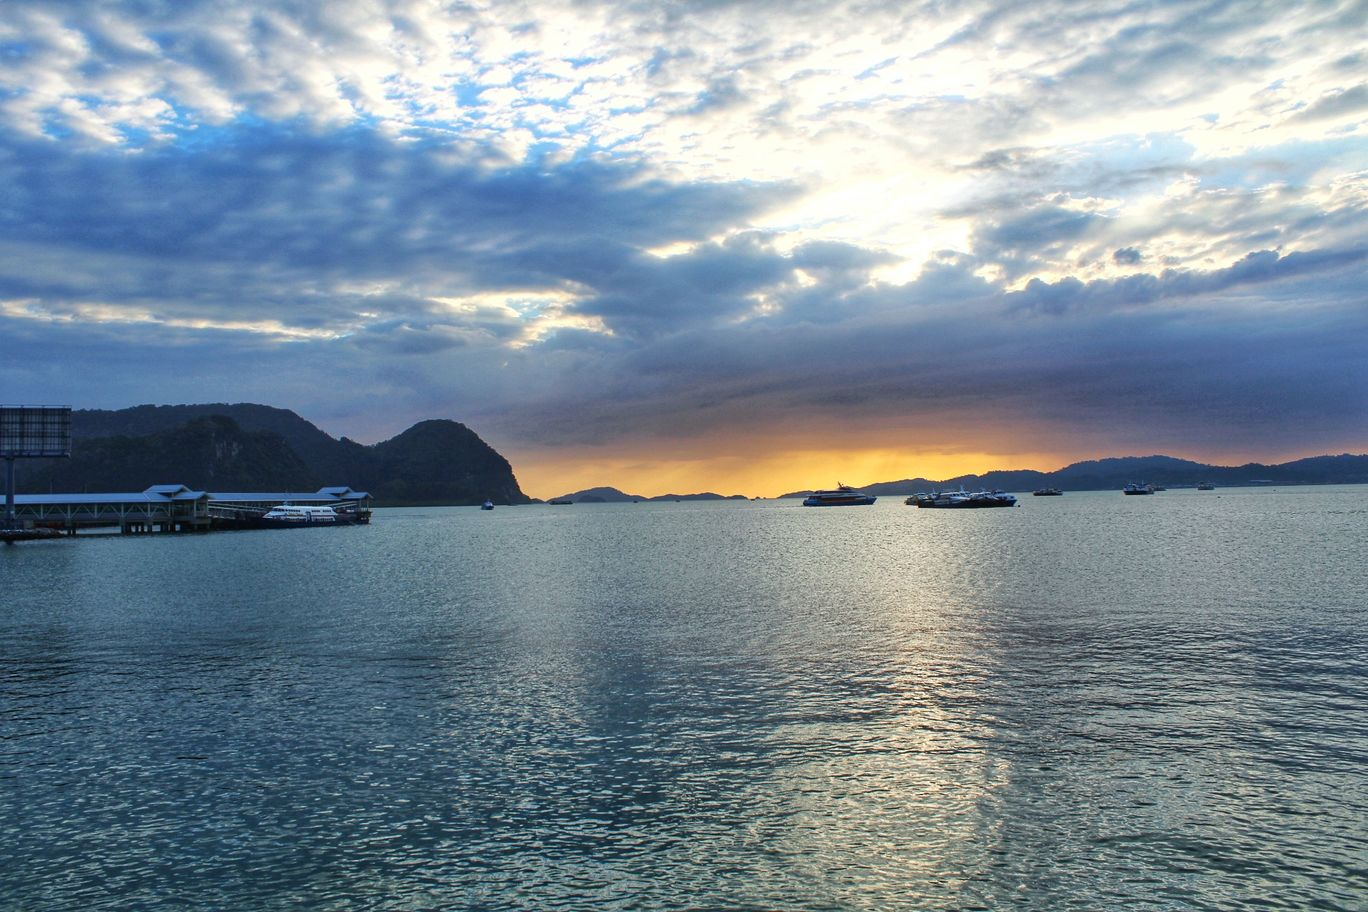 Photo of Langkawi By Tathagata basu(Fivefeet11wanderer)